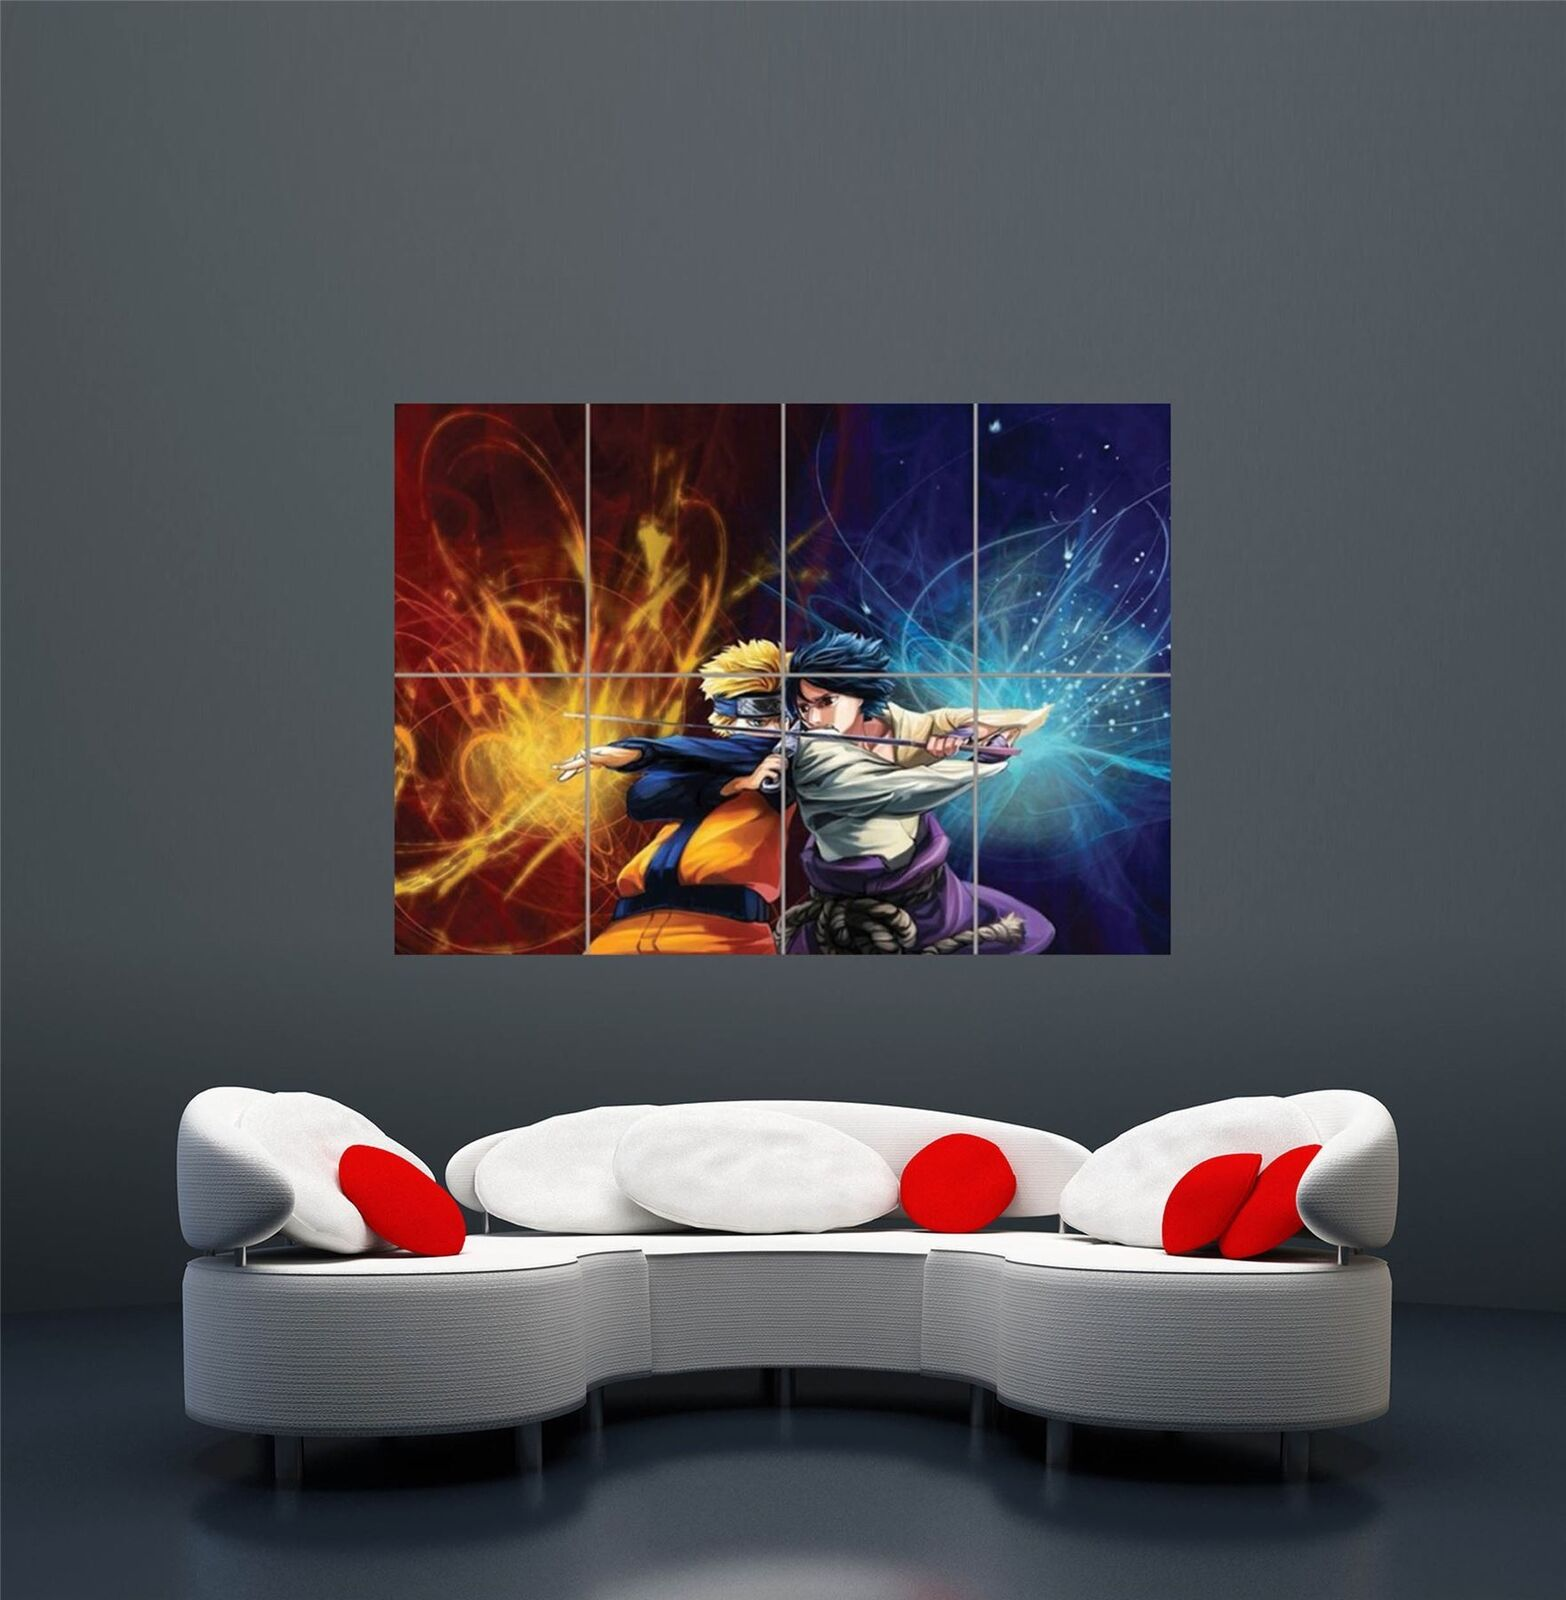 Itachi Uchiha Naruto Giant Wall Mural Art Poster Picture Print 47x33 Inches